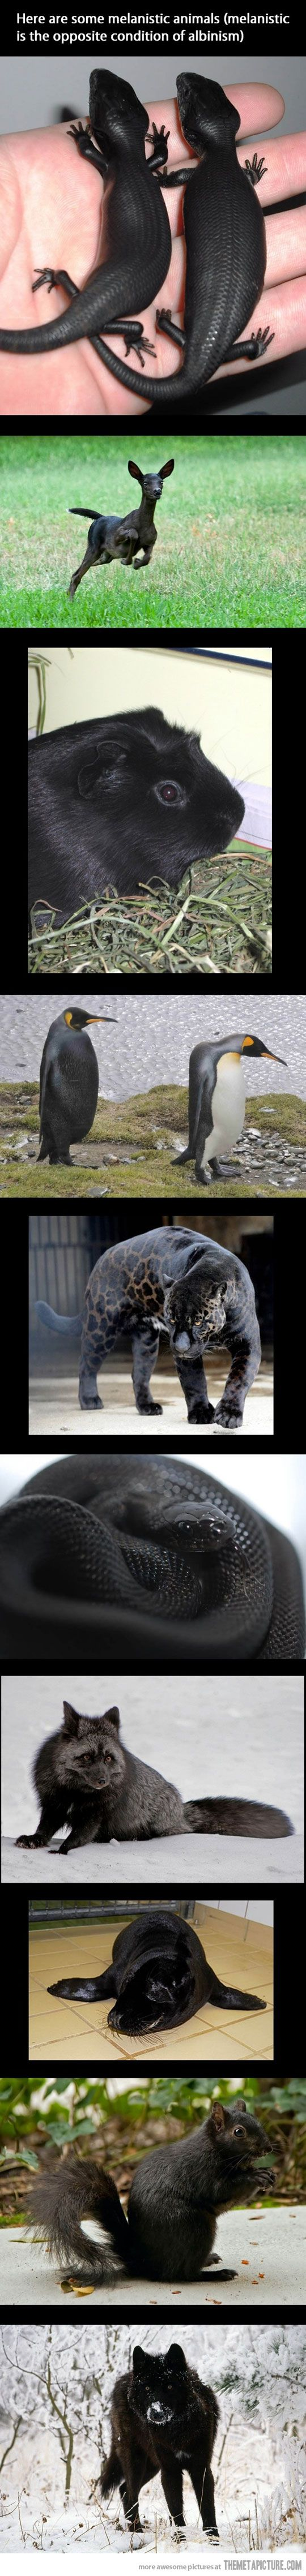 melanistic animals- I feel stupid for not knowing this condition existed. I mean, since there is an opposite for nearly everything- why not albinism?